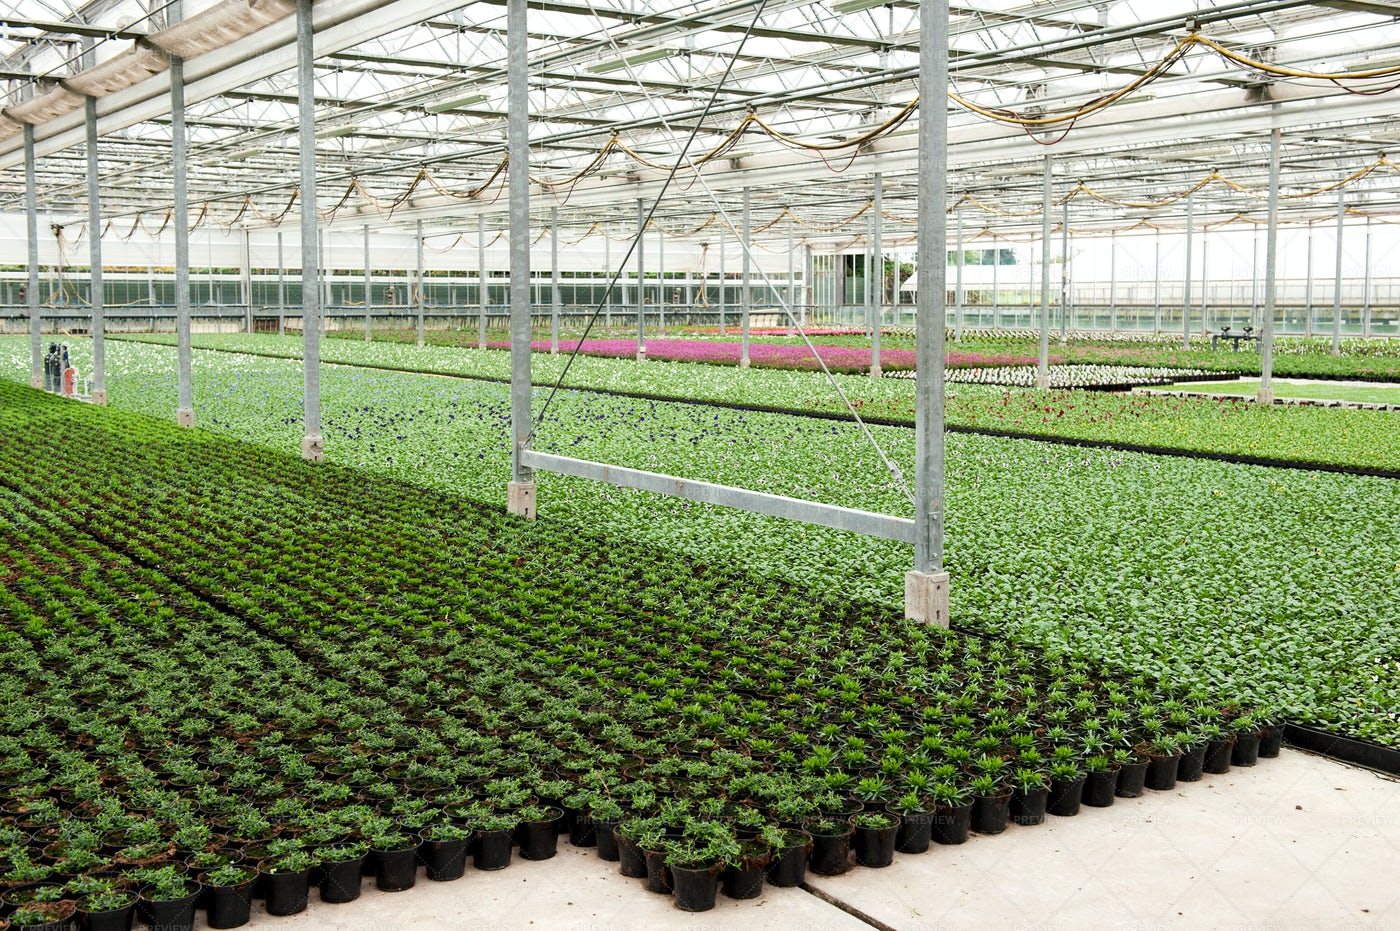 Pots In Greenhouse: Stock Photos